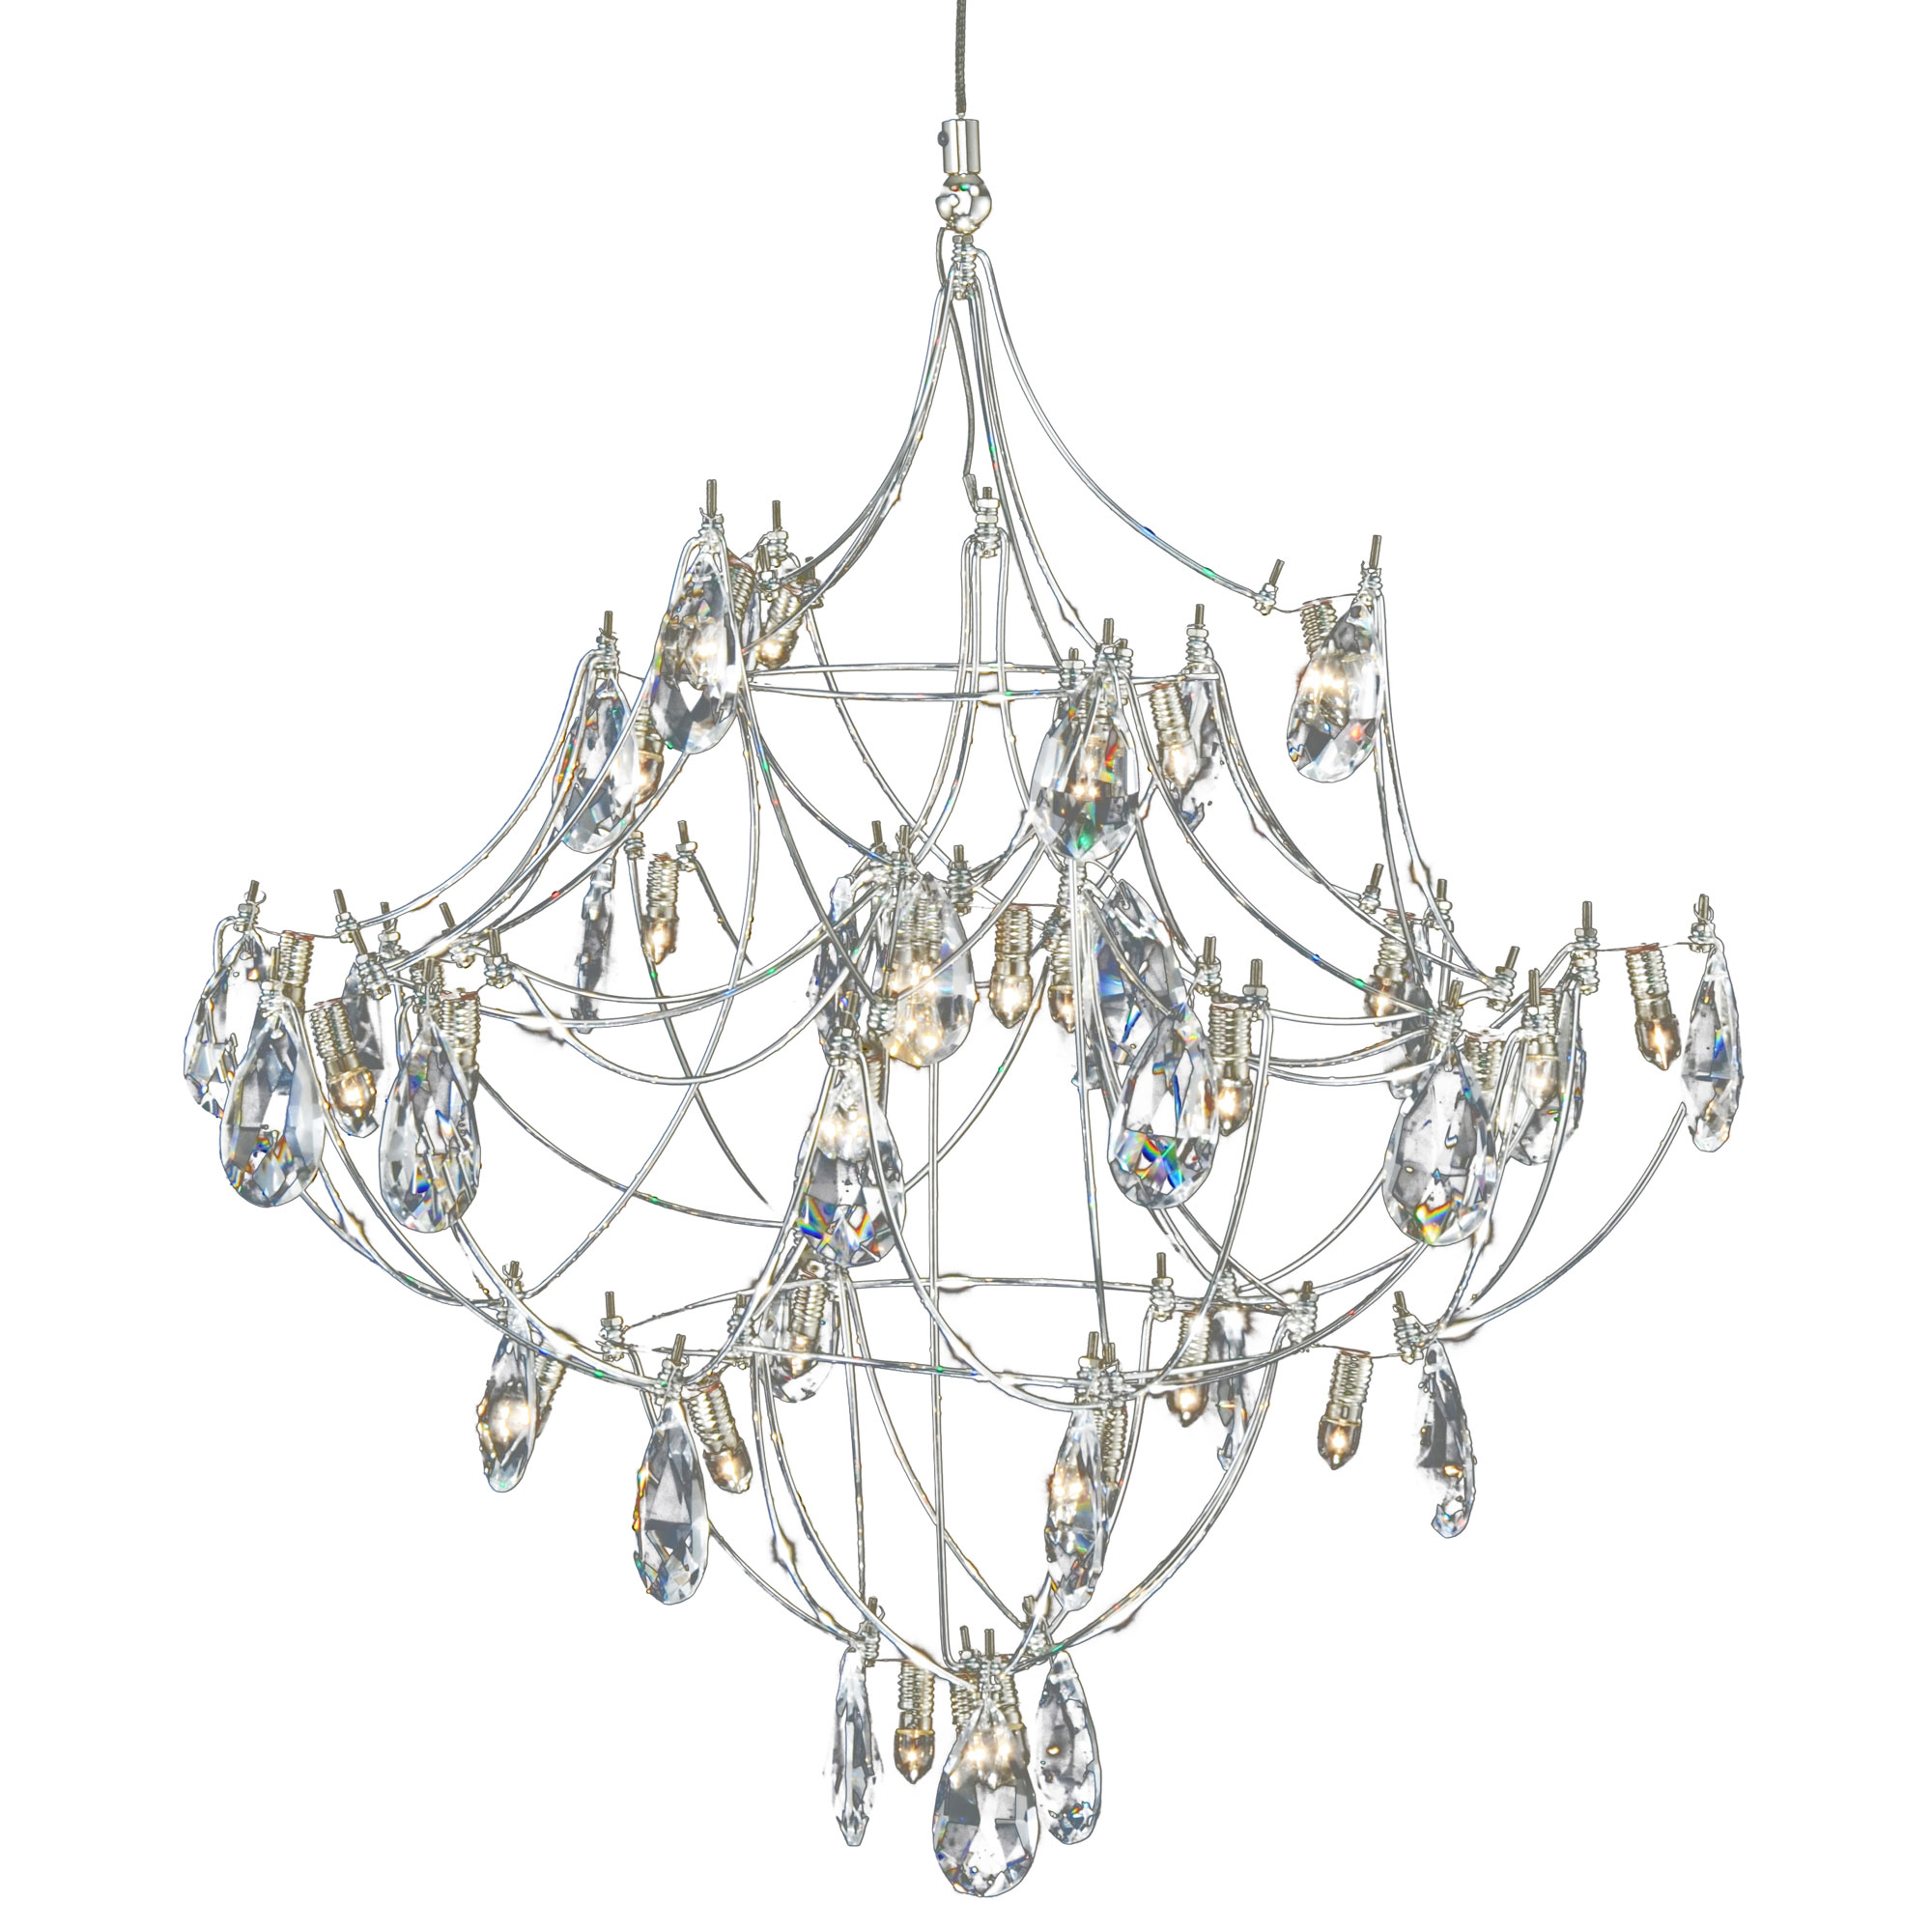 Crystal galaxy pendant by pureedge lighting fj cryga16 12 sn fj crystal galaxy pendant by pureedge lighting fj cryga16 12 sn aloadofball Choice Image